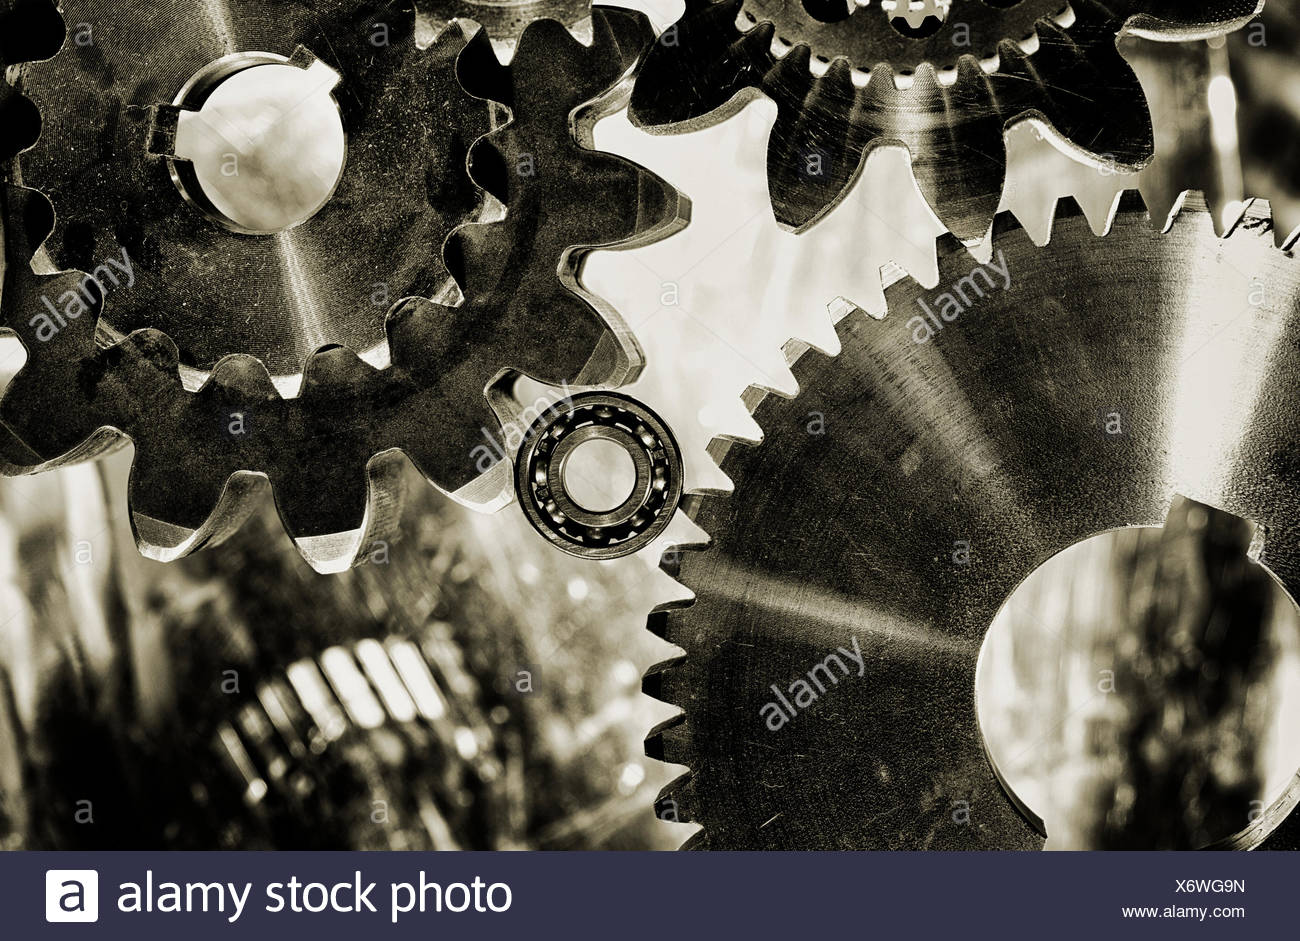 Metal Cogs Stock Photos Amp Metal Cogs Stock Images Alamy